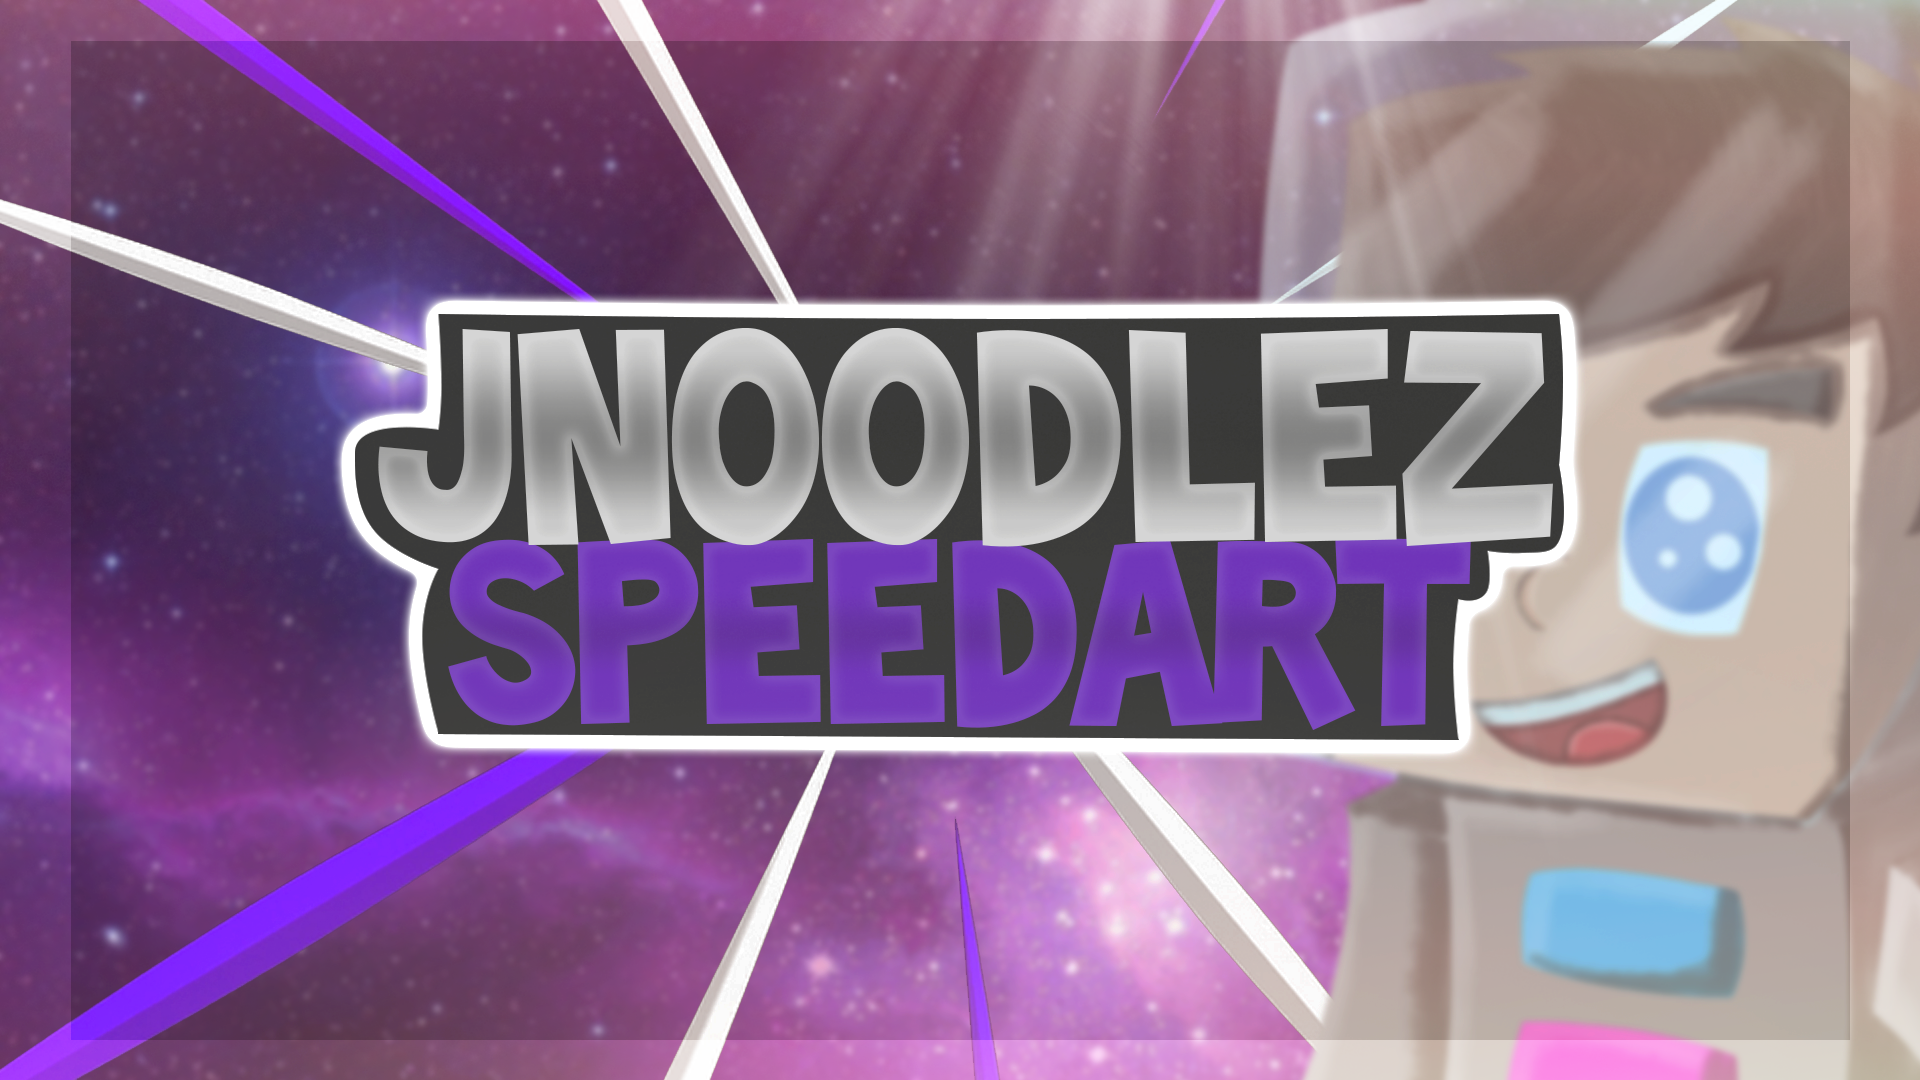 JNoodlez - Speed Art